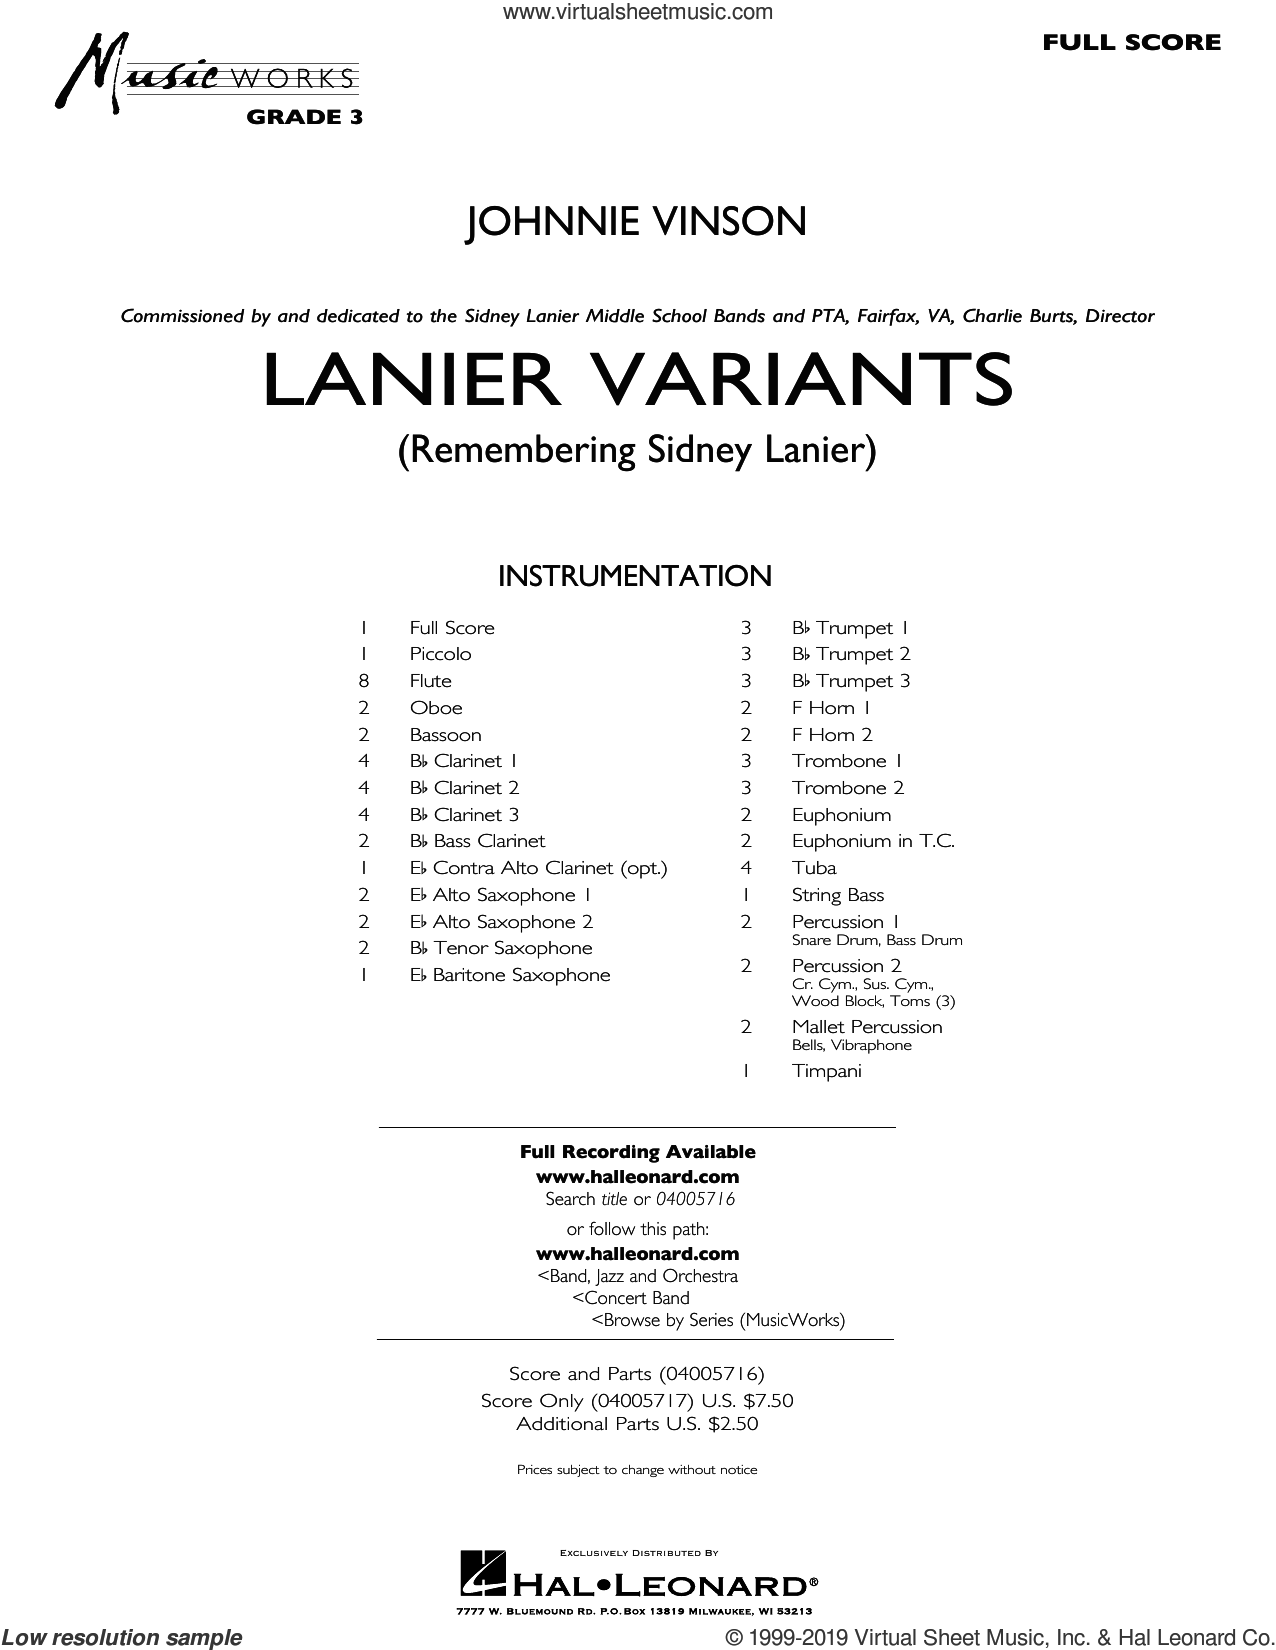 Lanier Variants (COMPLETE) sheet music for concert band by Johnnie Vinson, intermediate skill level